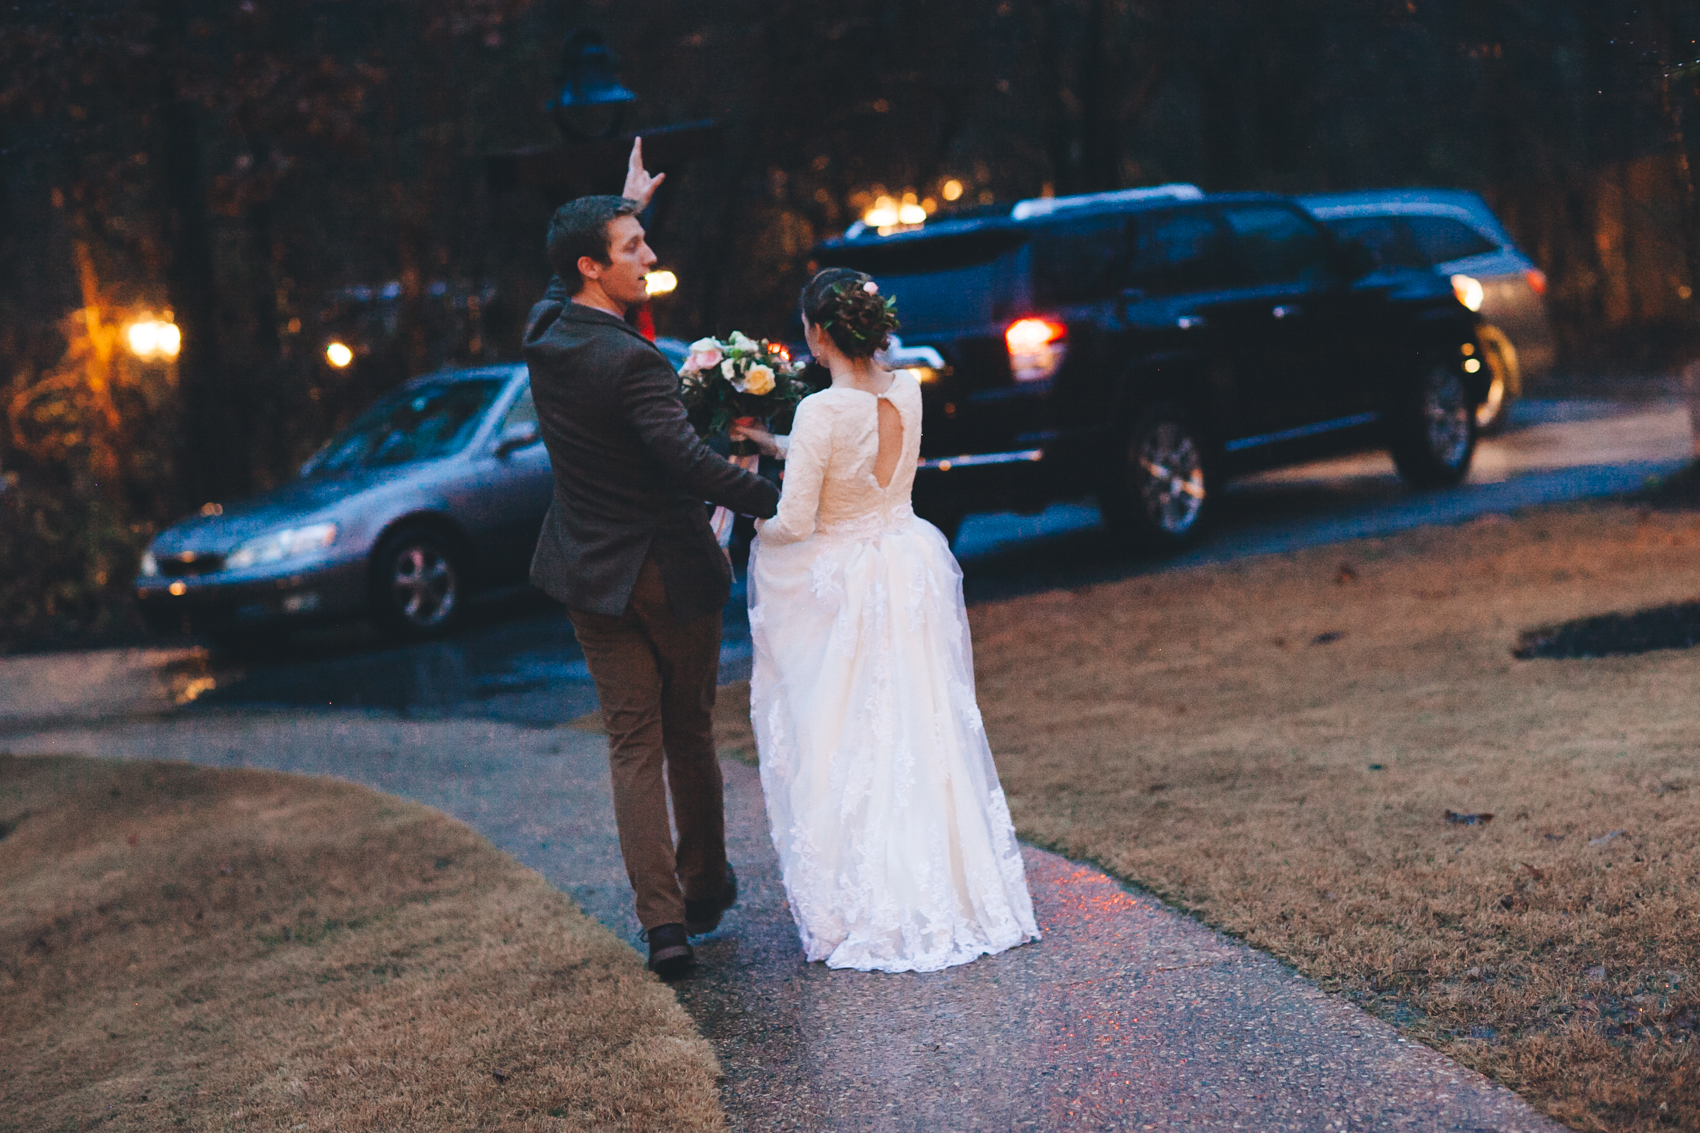 Cameron&ErinsWedding12-27-15-103